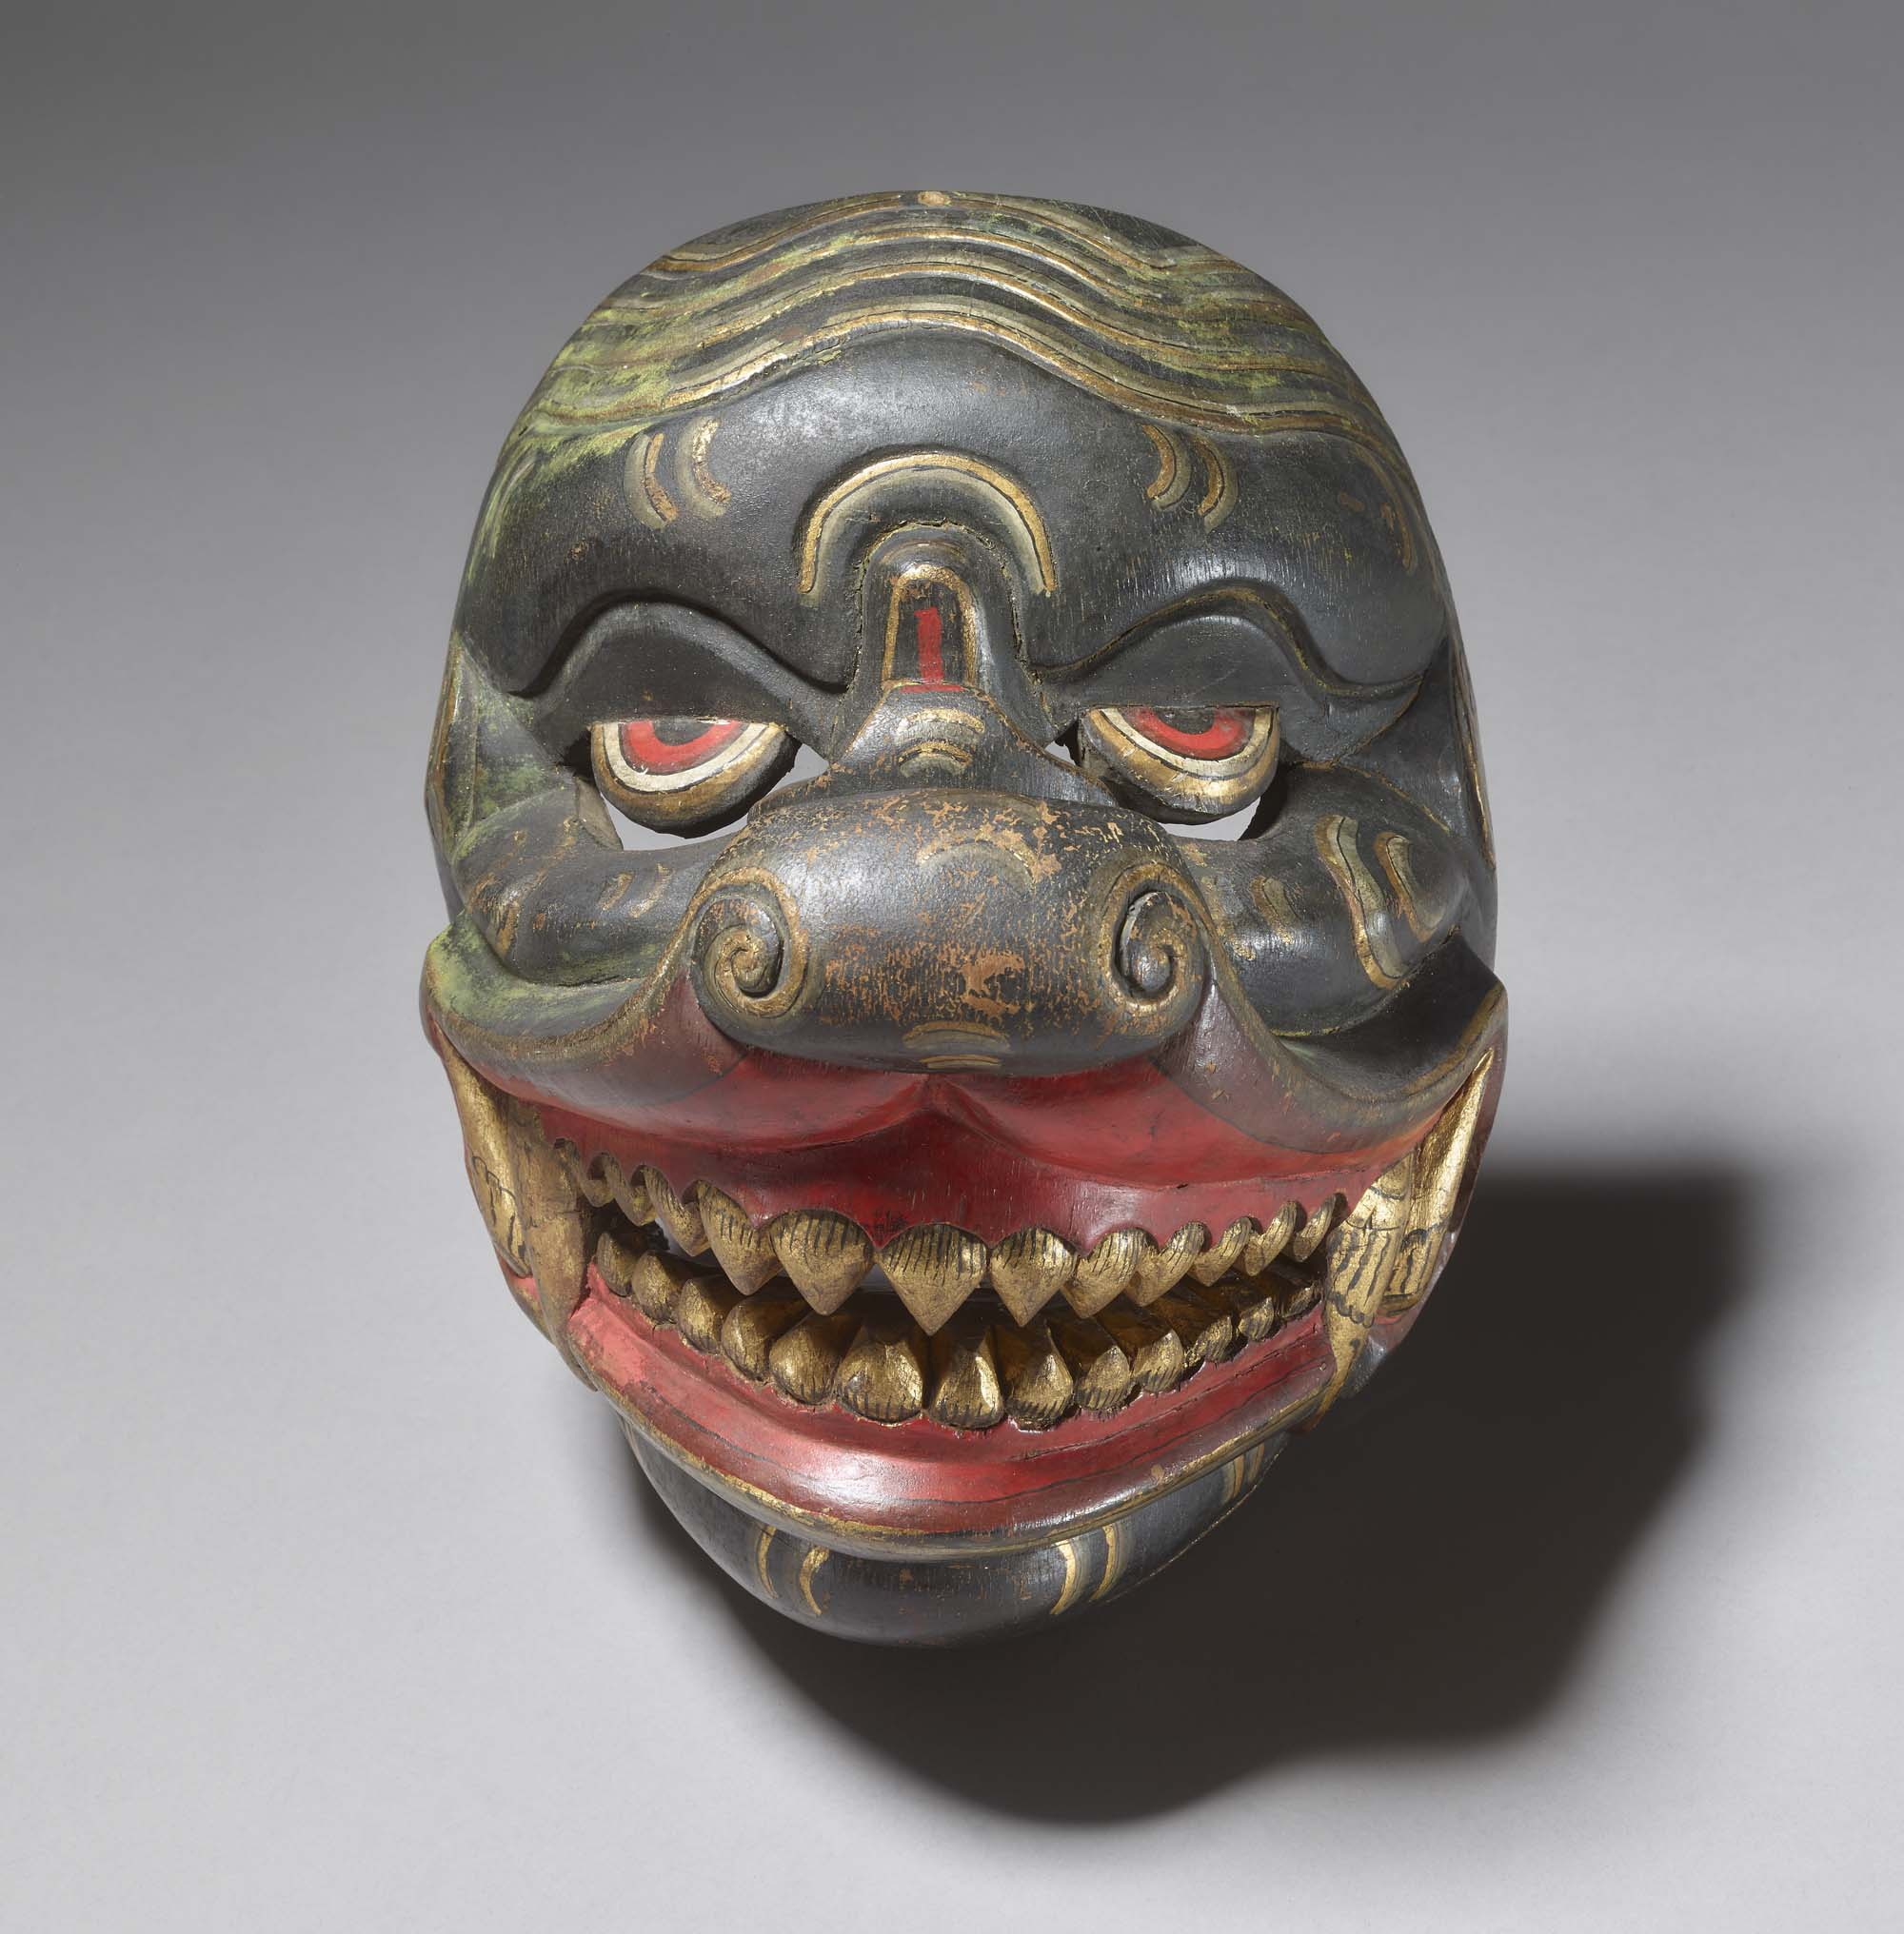 a decoarted mask with green skin and yellow teeth in red gums